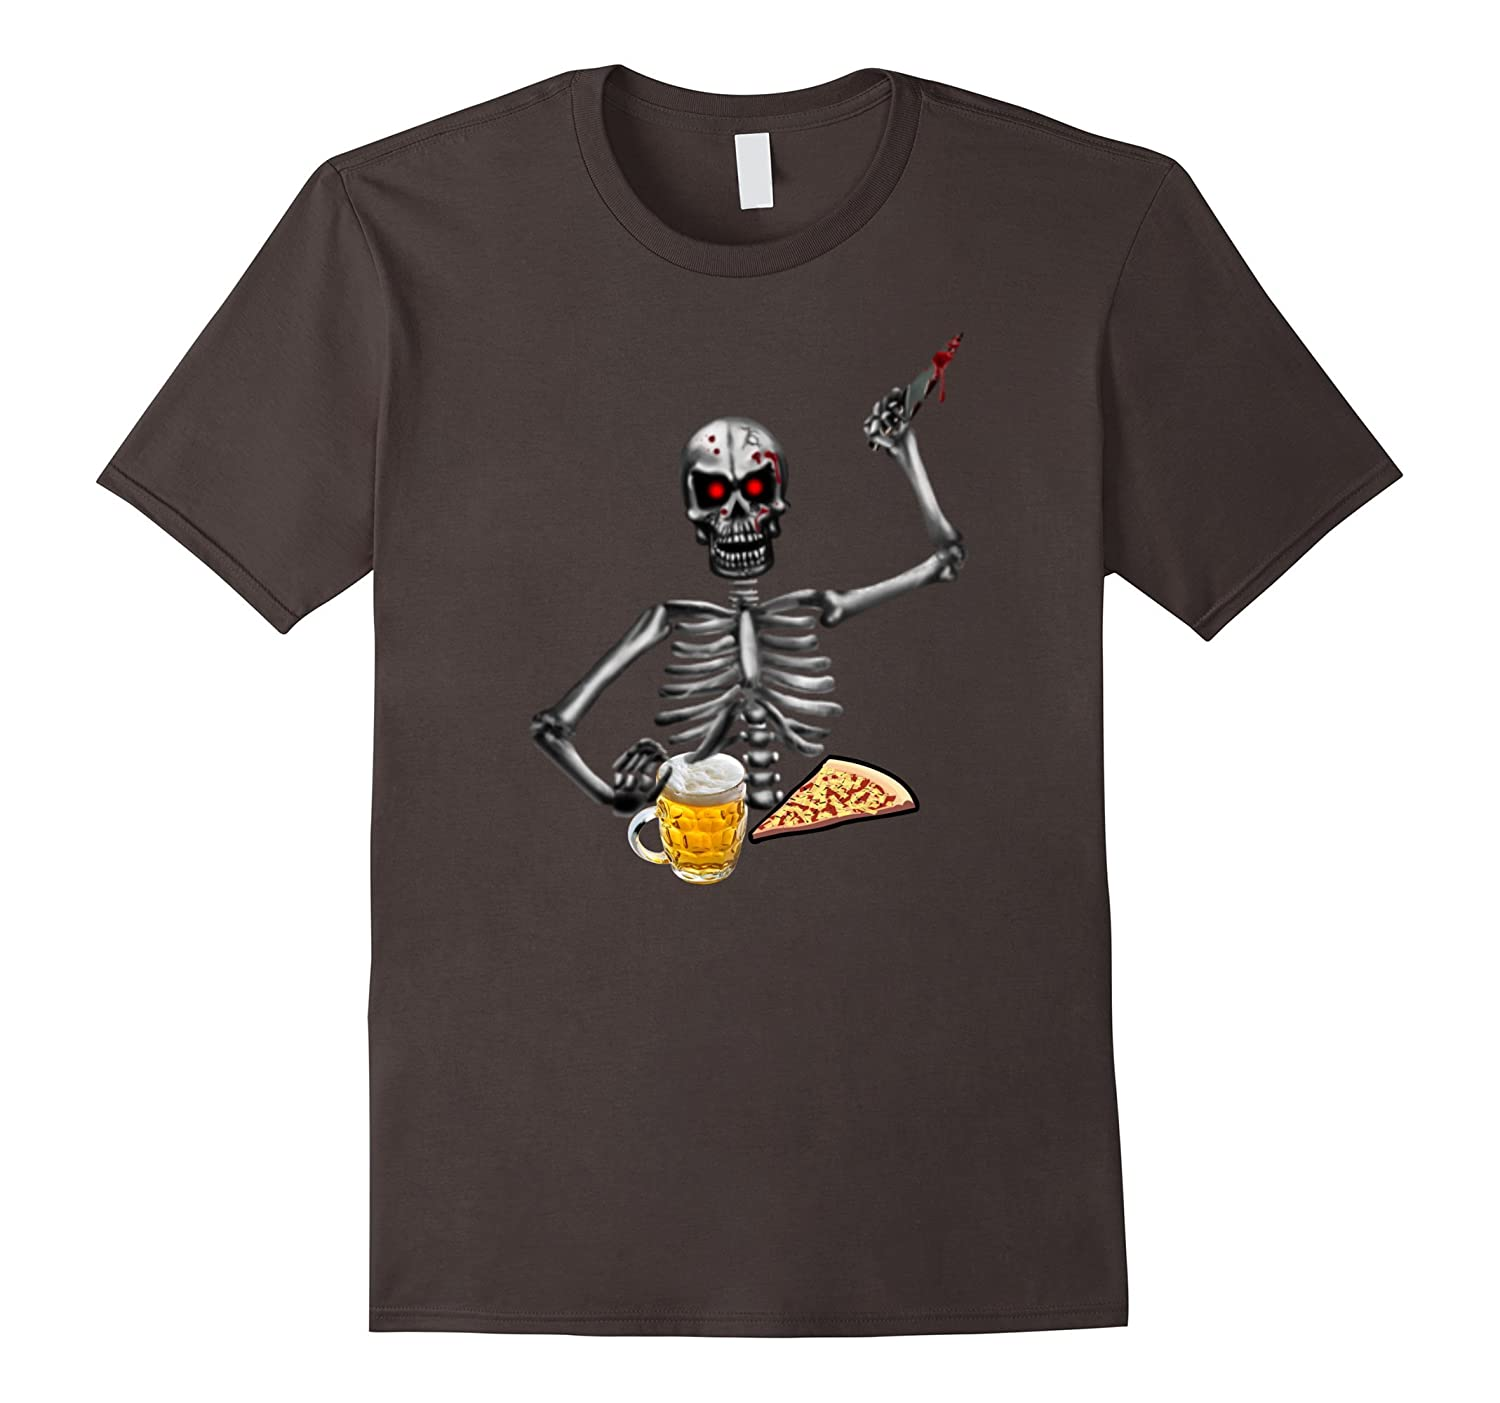 Funny Halloween Skeleton Ghost Horror Haunted House T Shirt-TJ